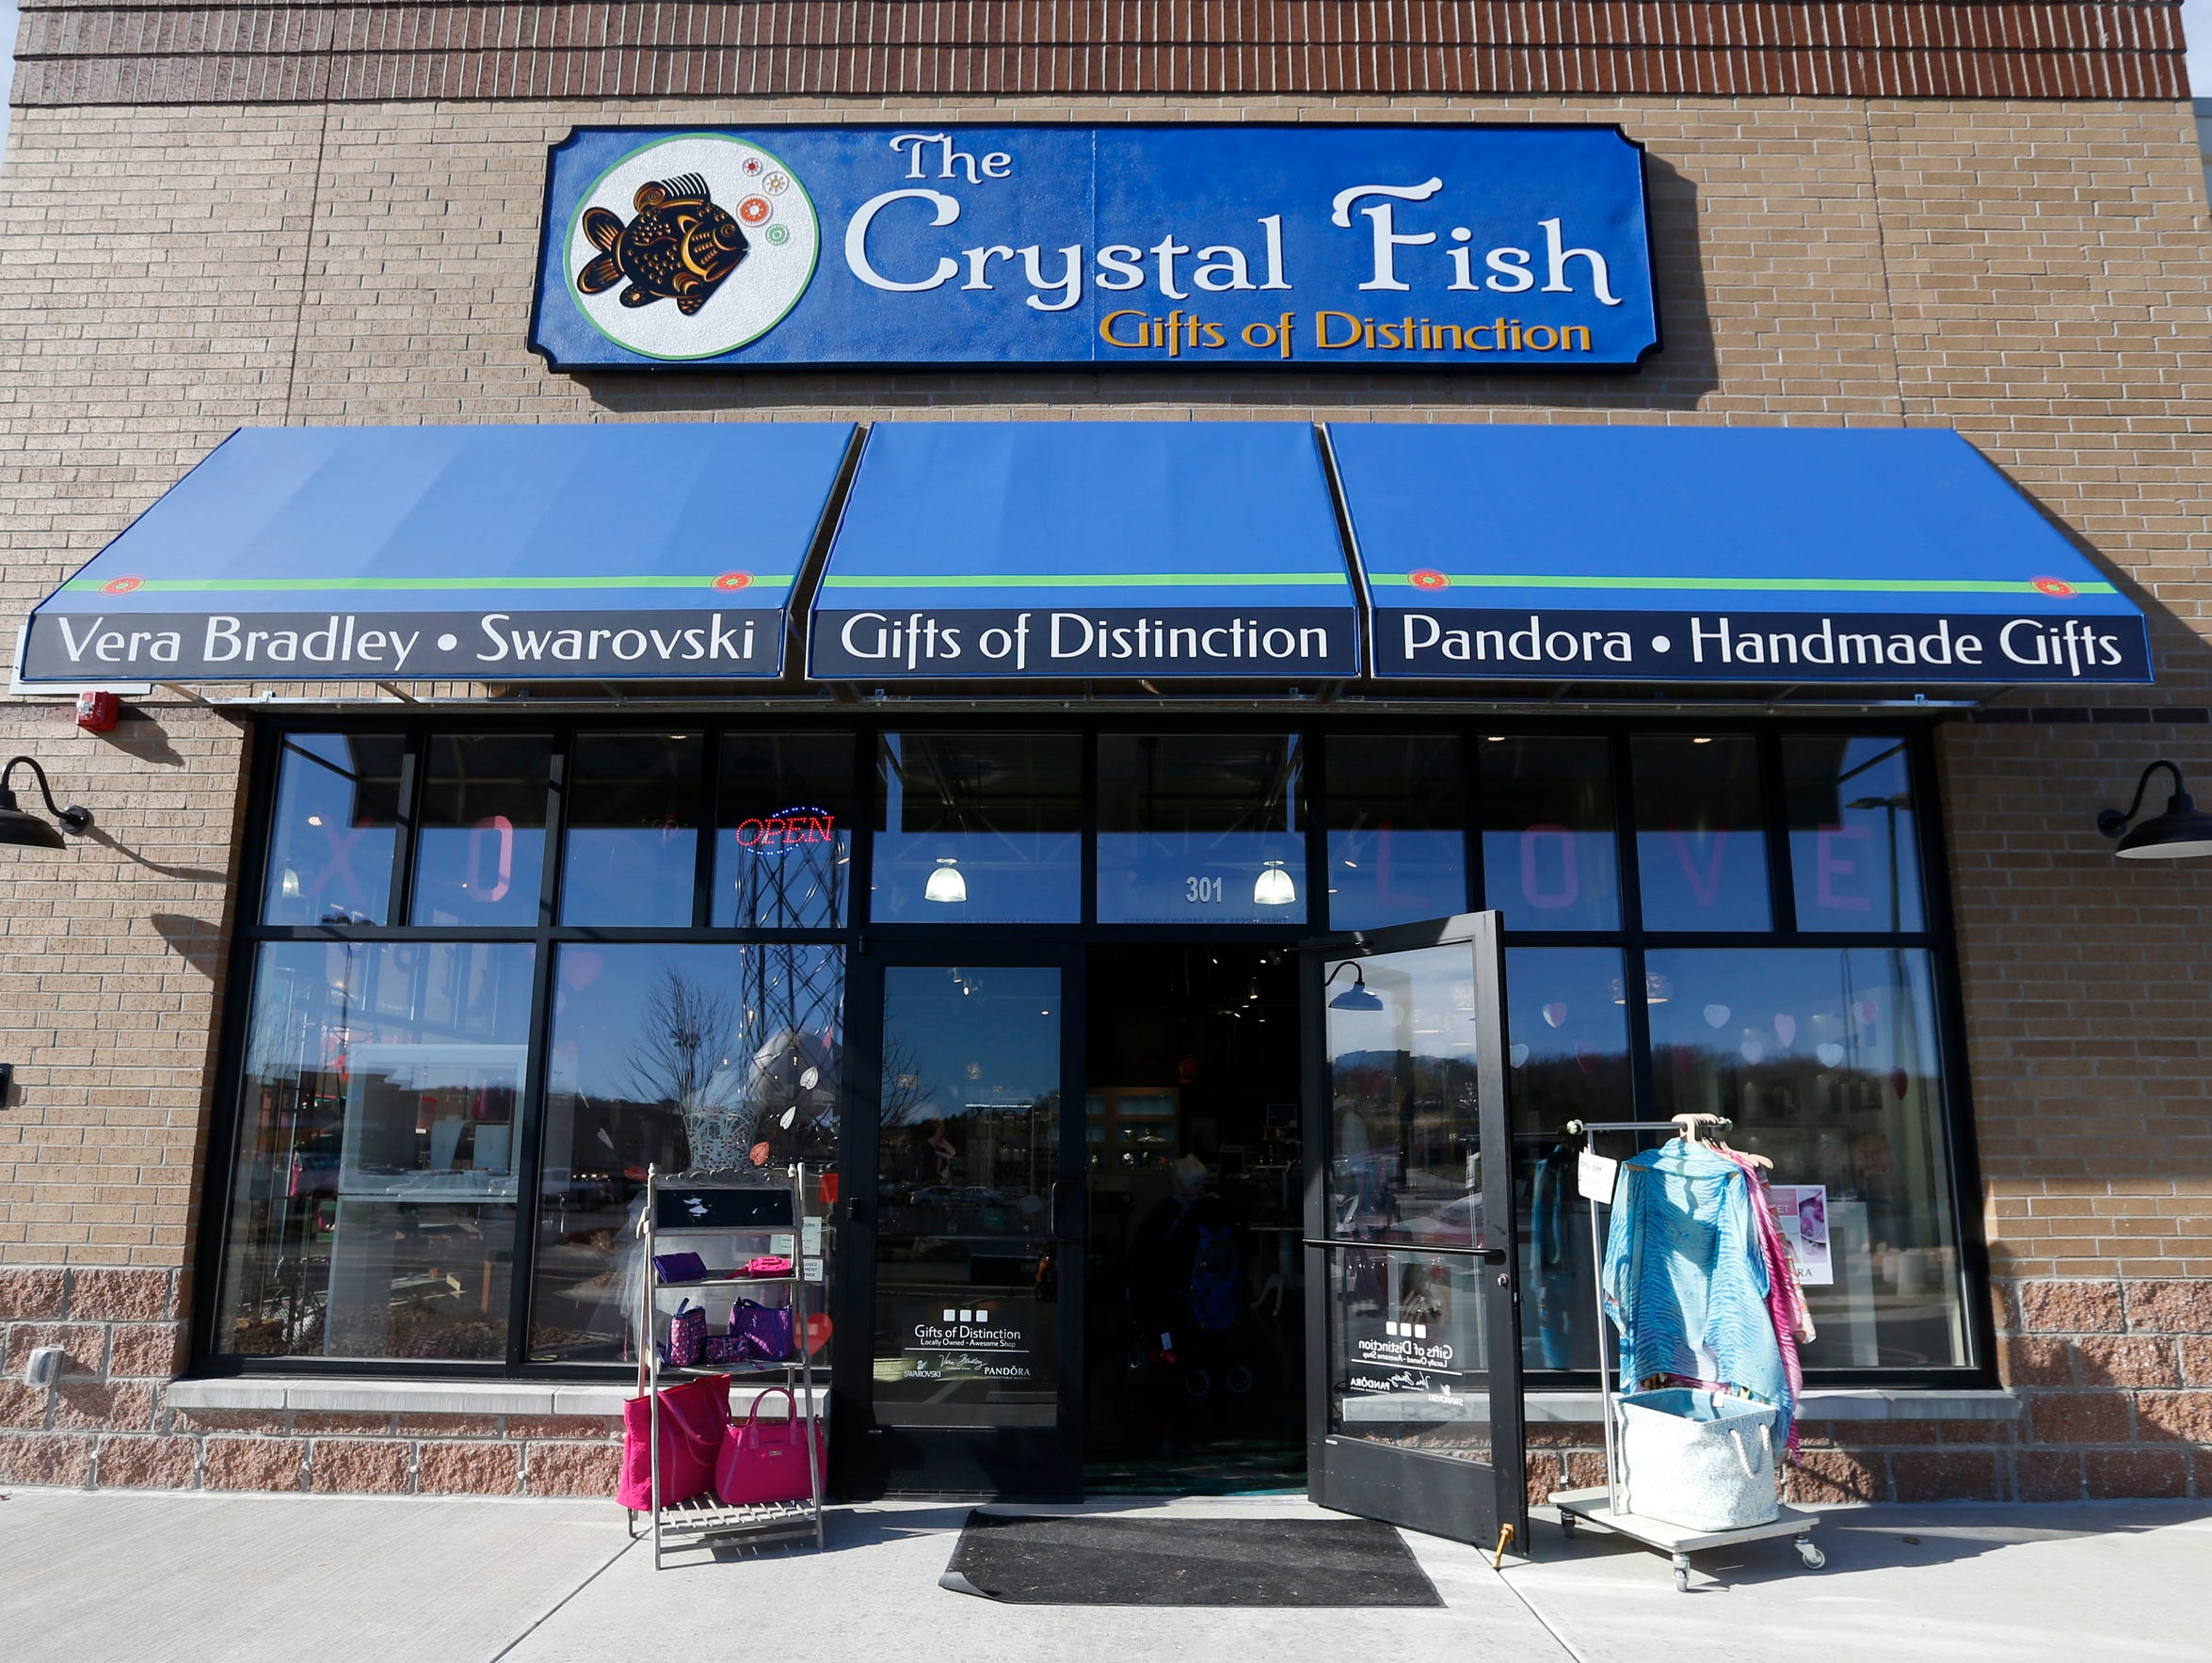 The Crystal Fish is located at 490 Branson Landing